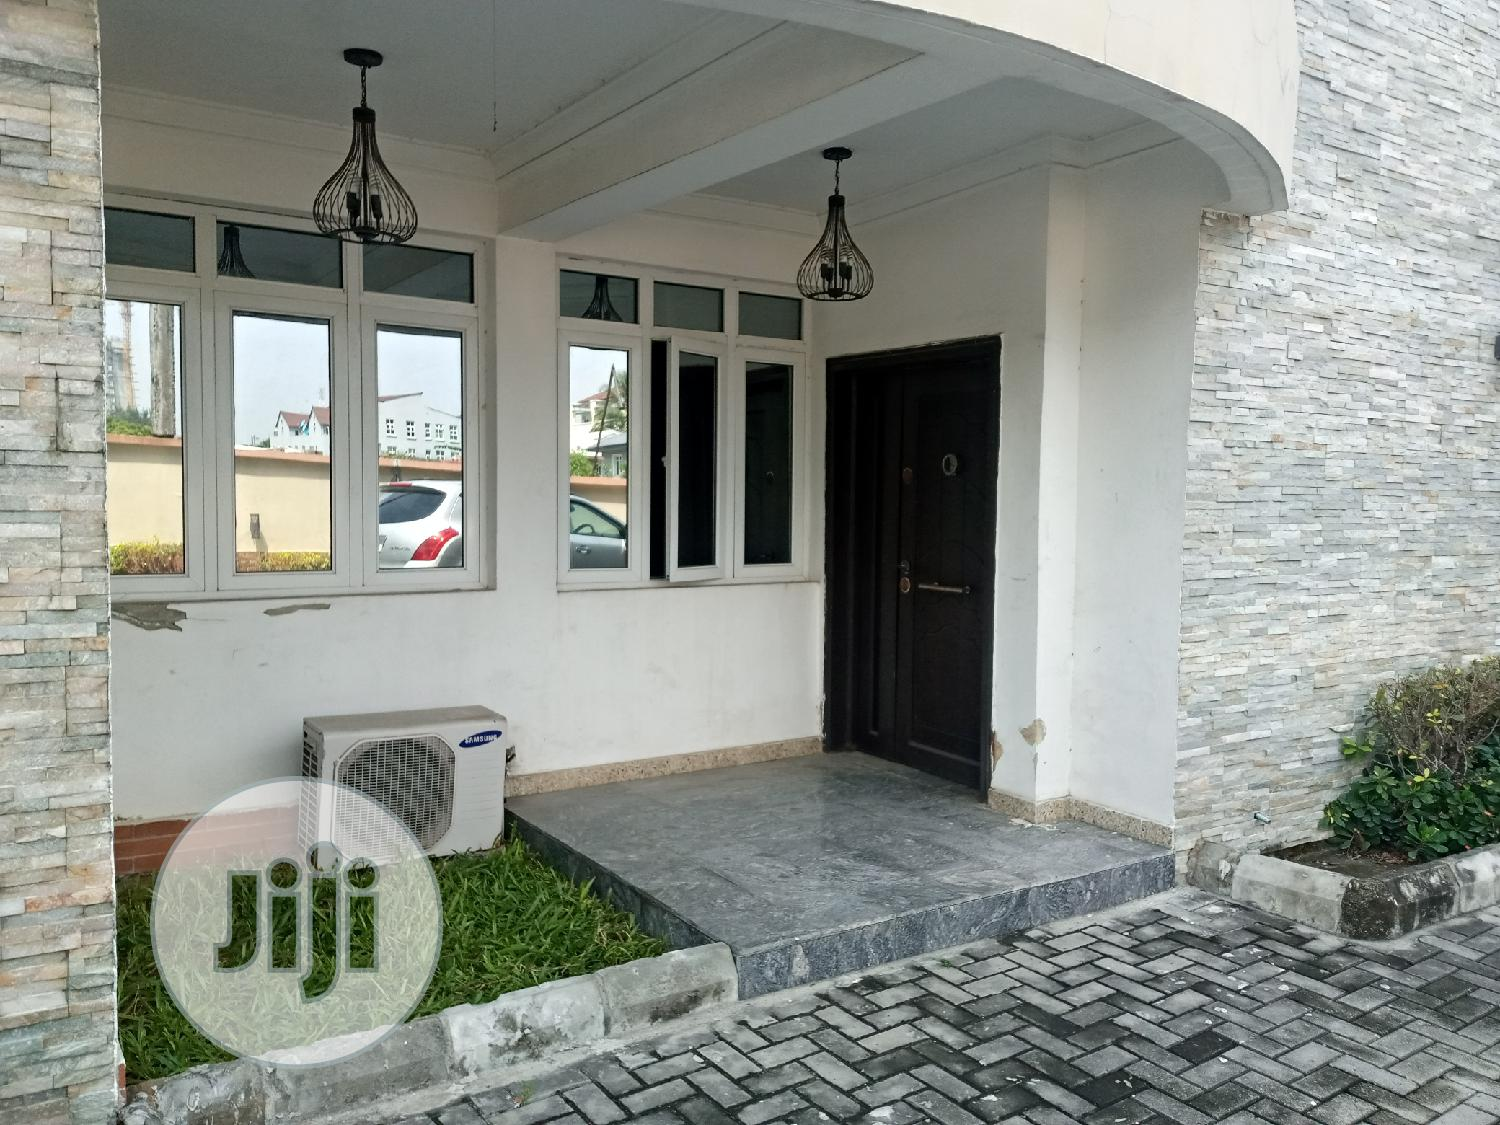 Service 5 Bedroom Townhouse With an Attached Boys Quarter